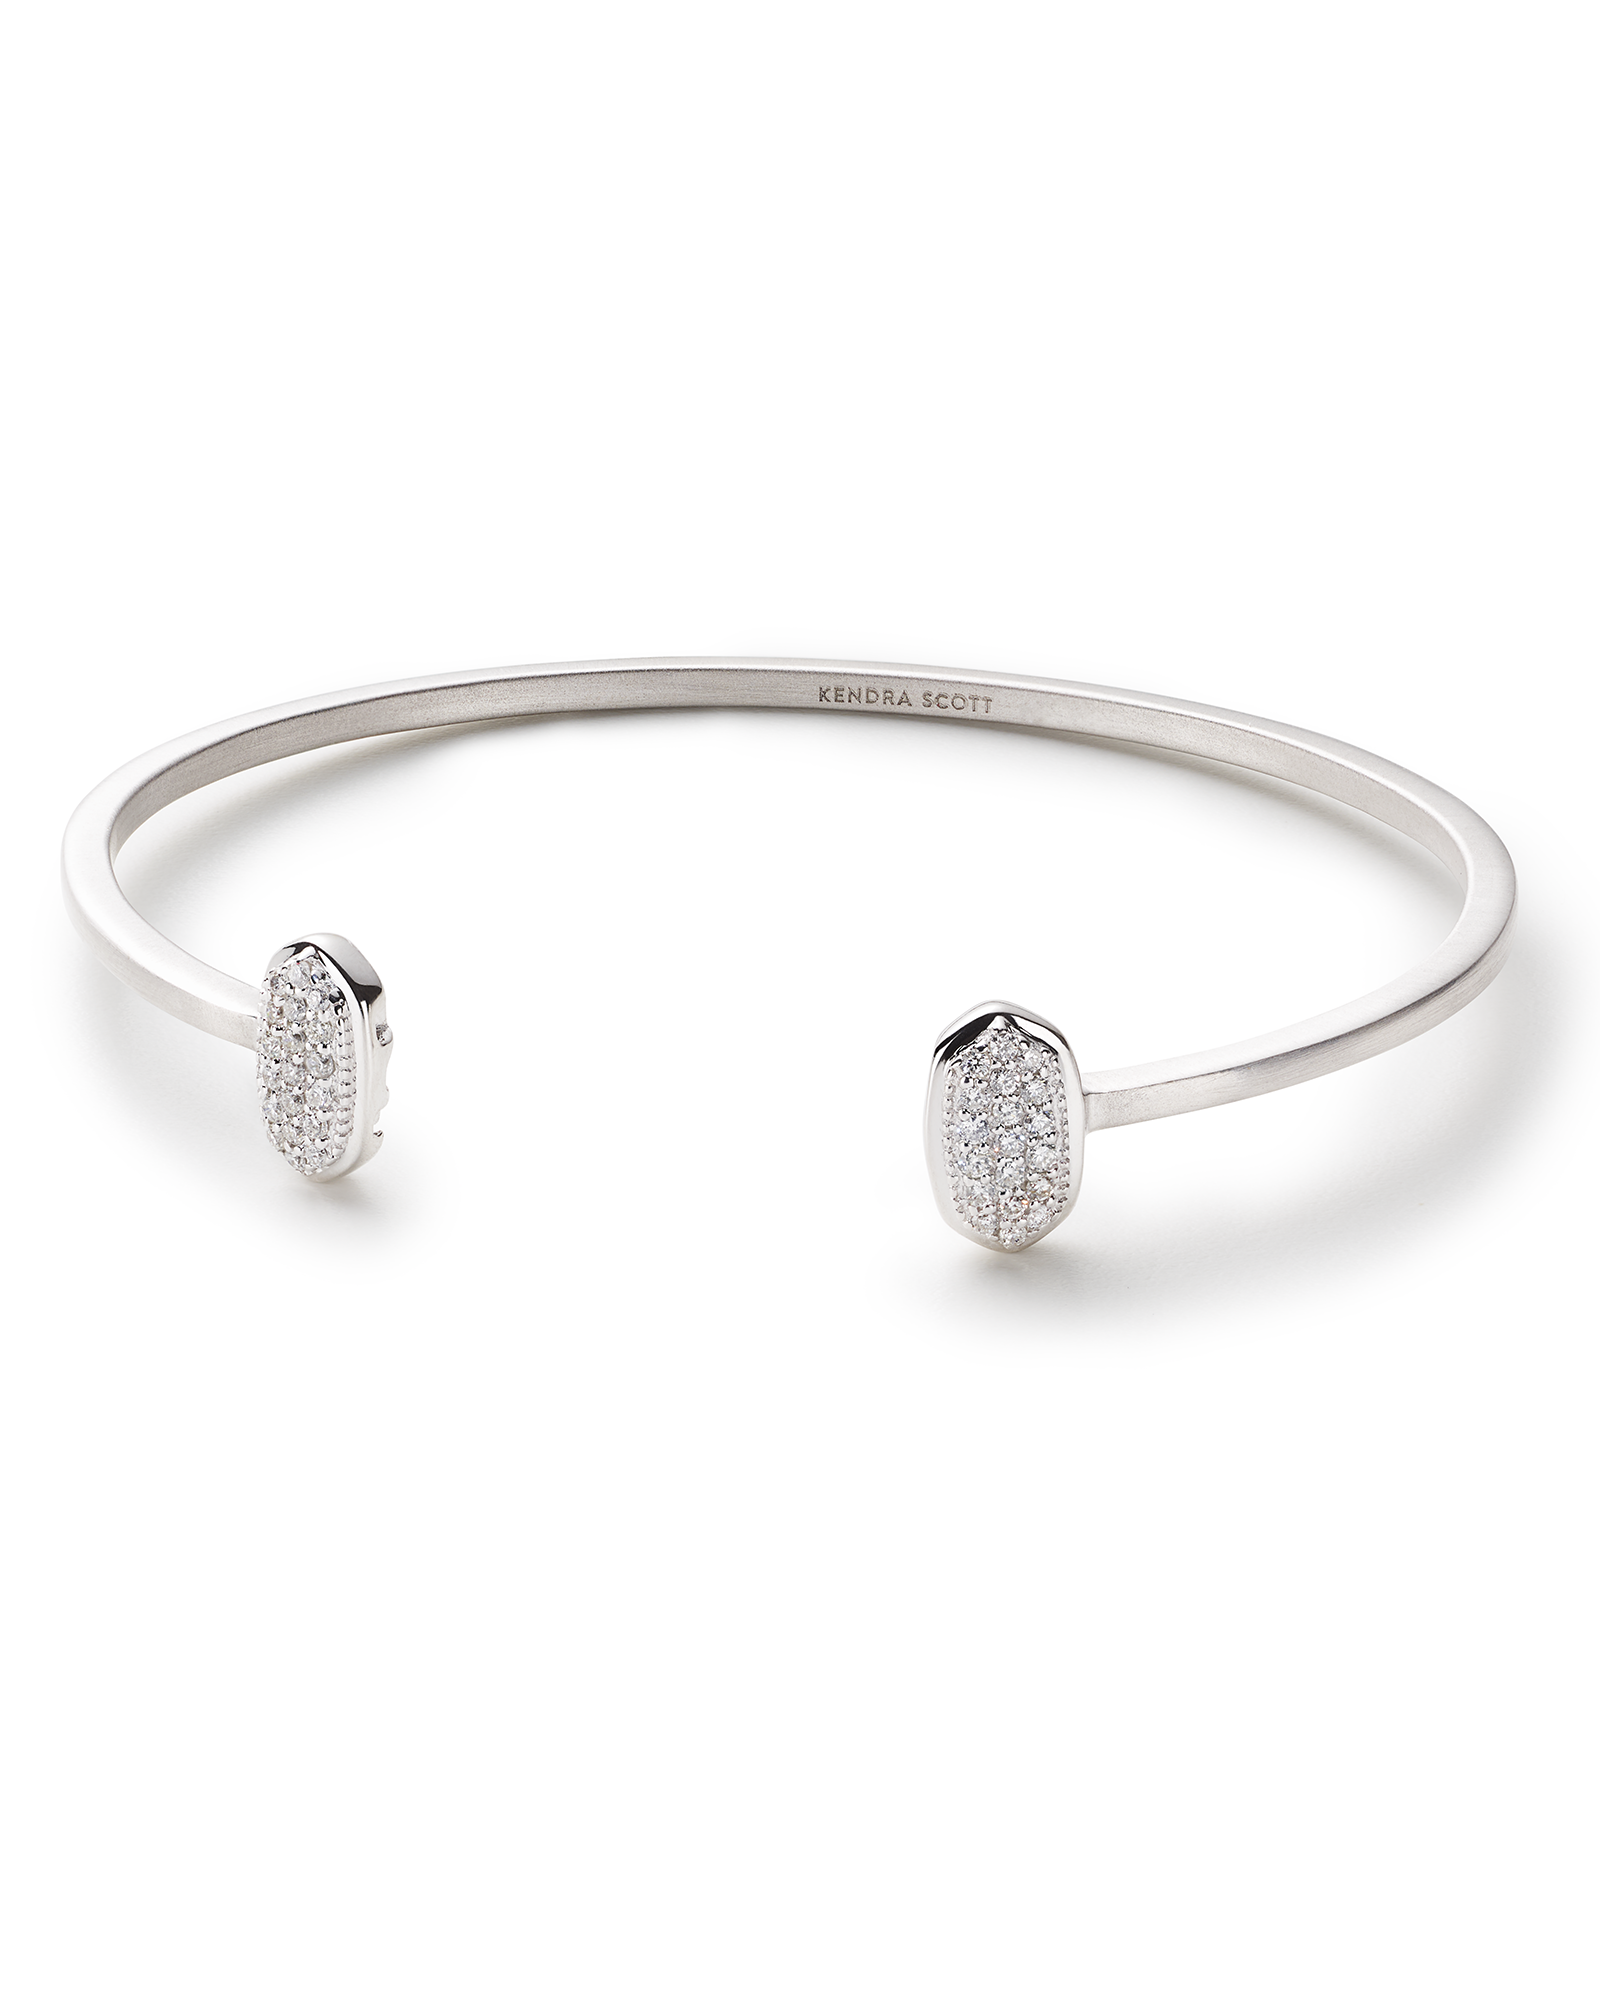 Elias Cuff Bracelet in Pave Diamond and 14k White Gold